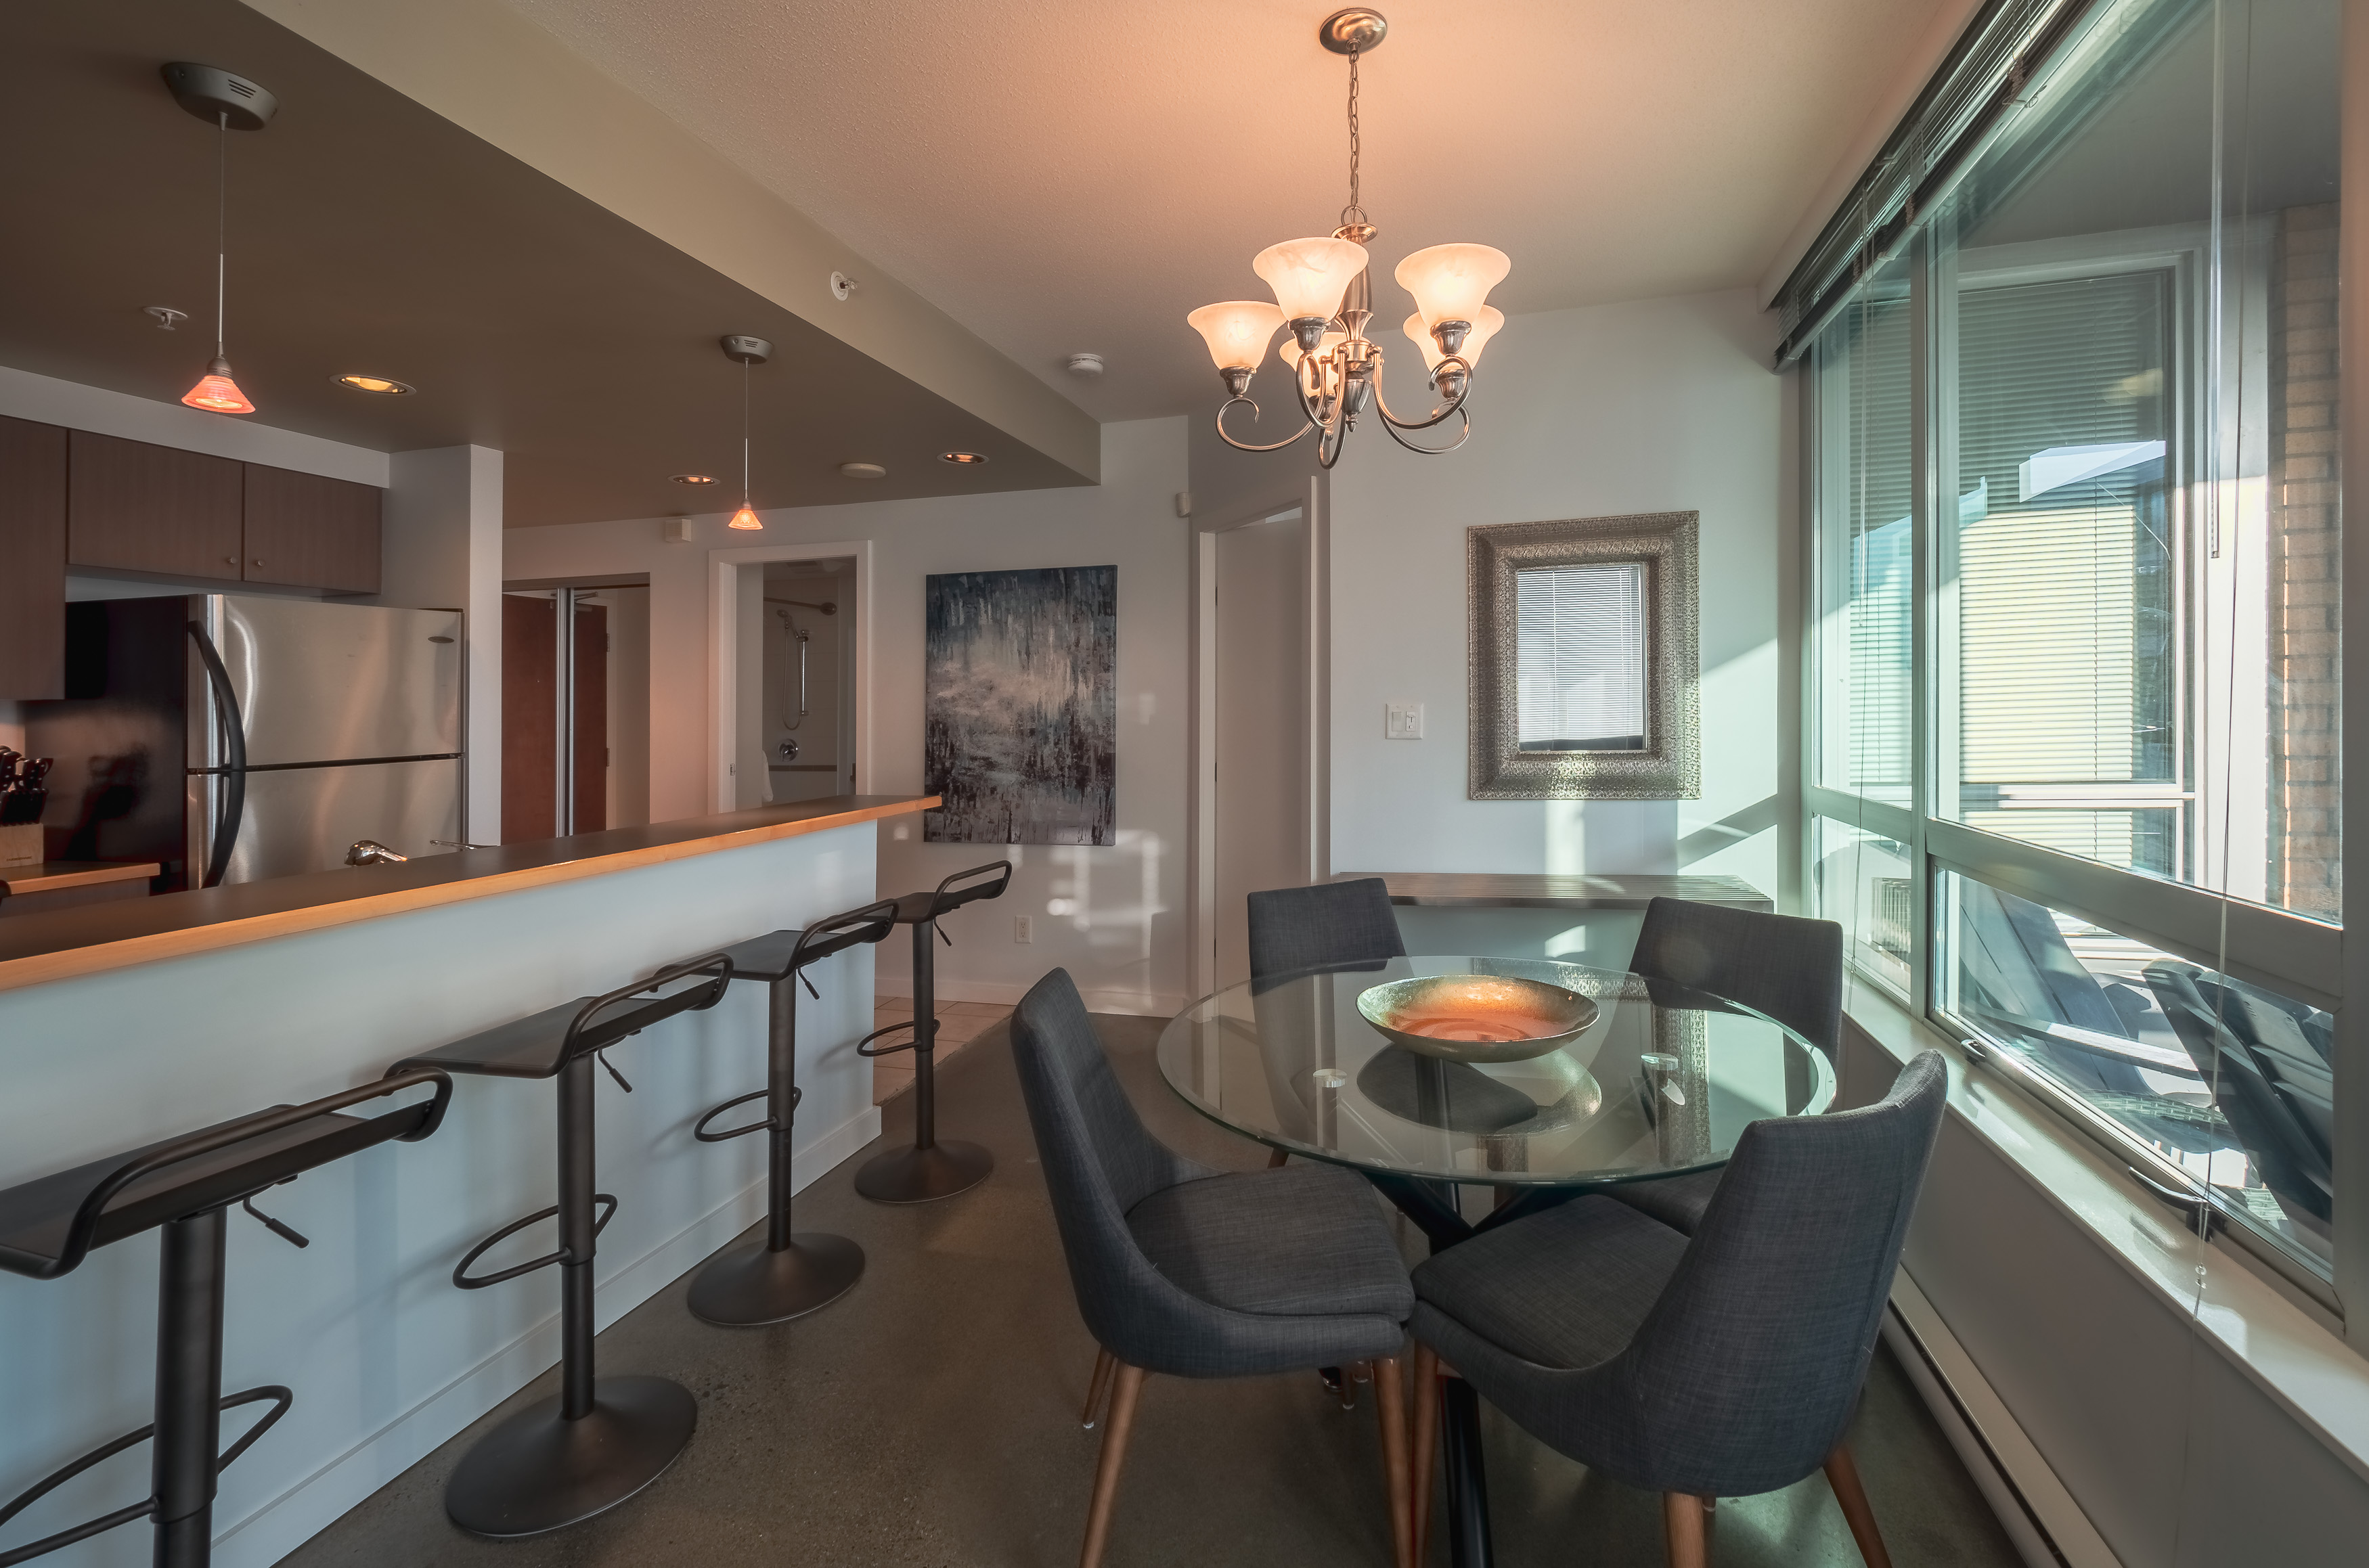 Corazon 507 Dining room from living room